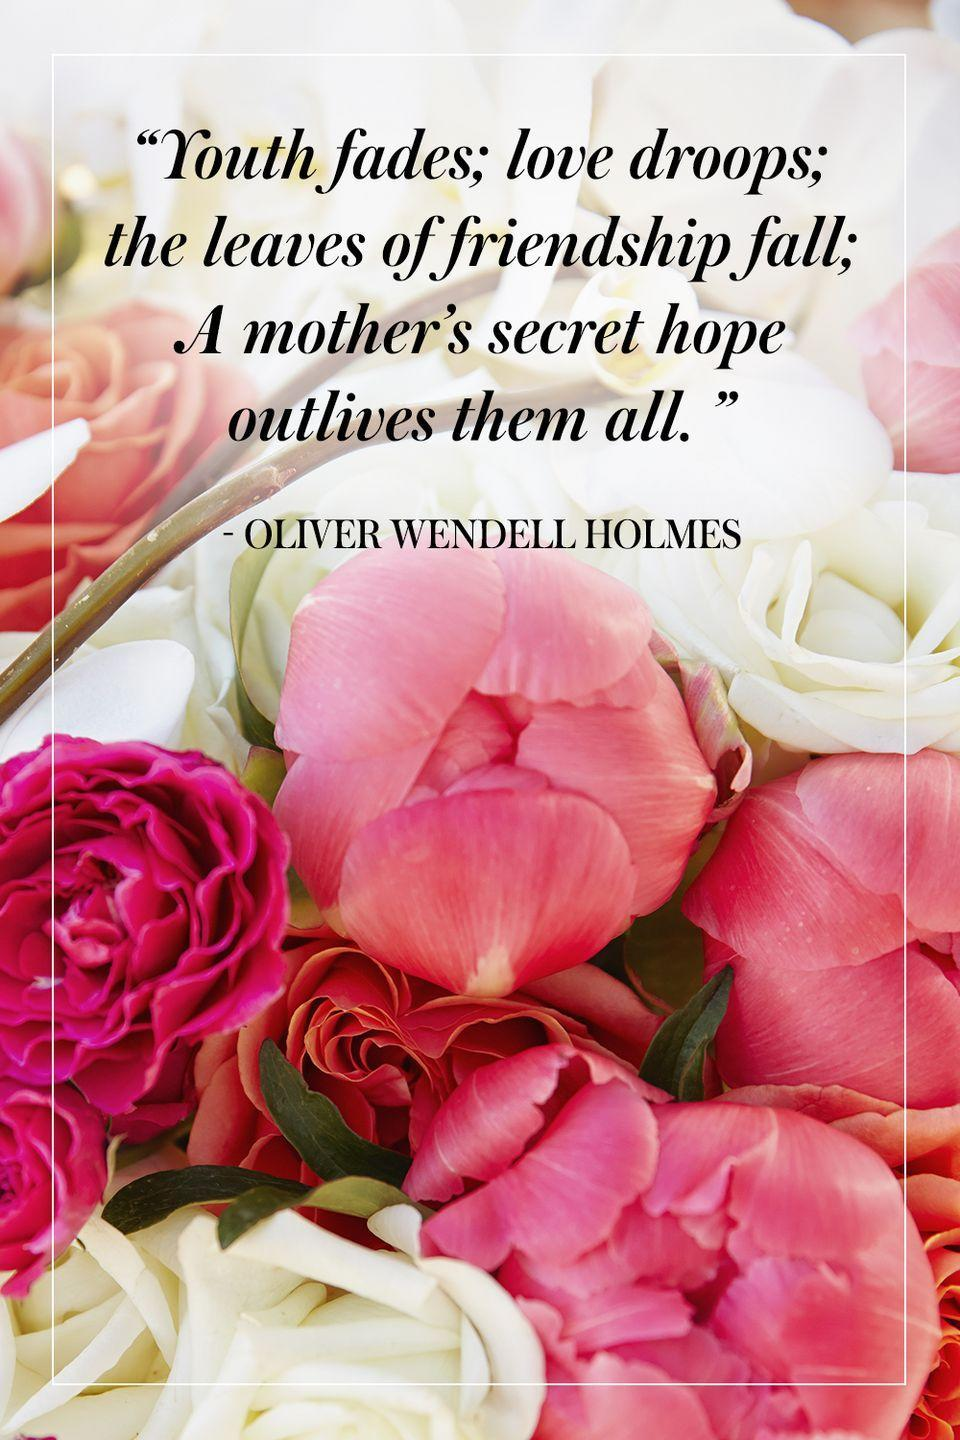 """<p>""""Youth fades; love droops; the leaves of friendship fall; A mother's secret hope outlives them all.""""</p><p>- Oliver Wendell Holmes</p>"""